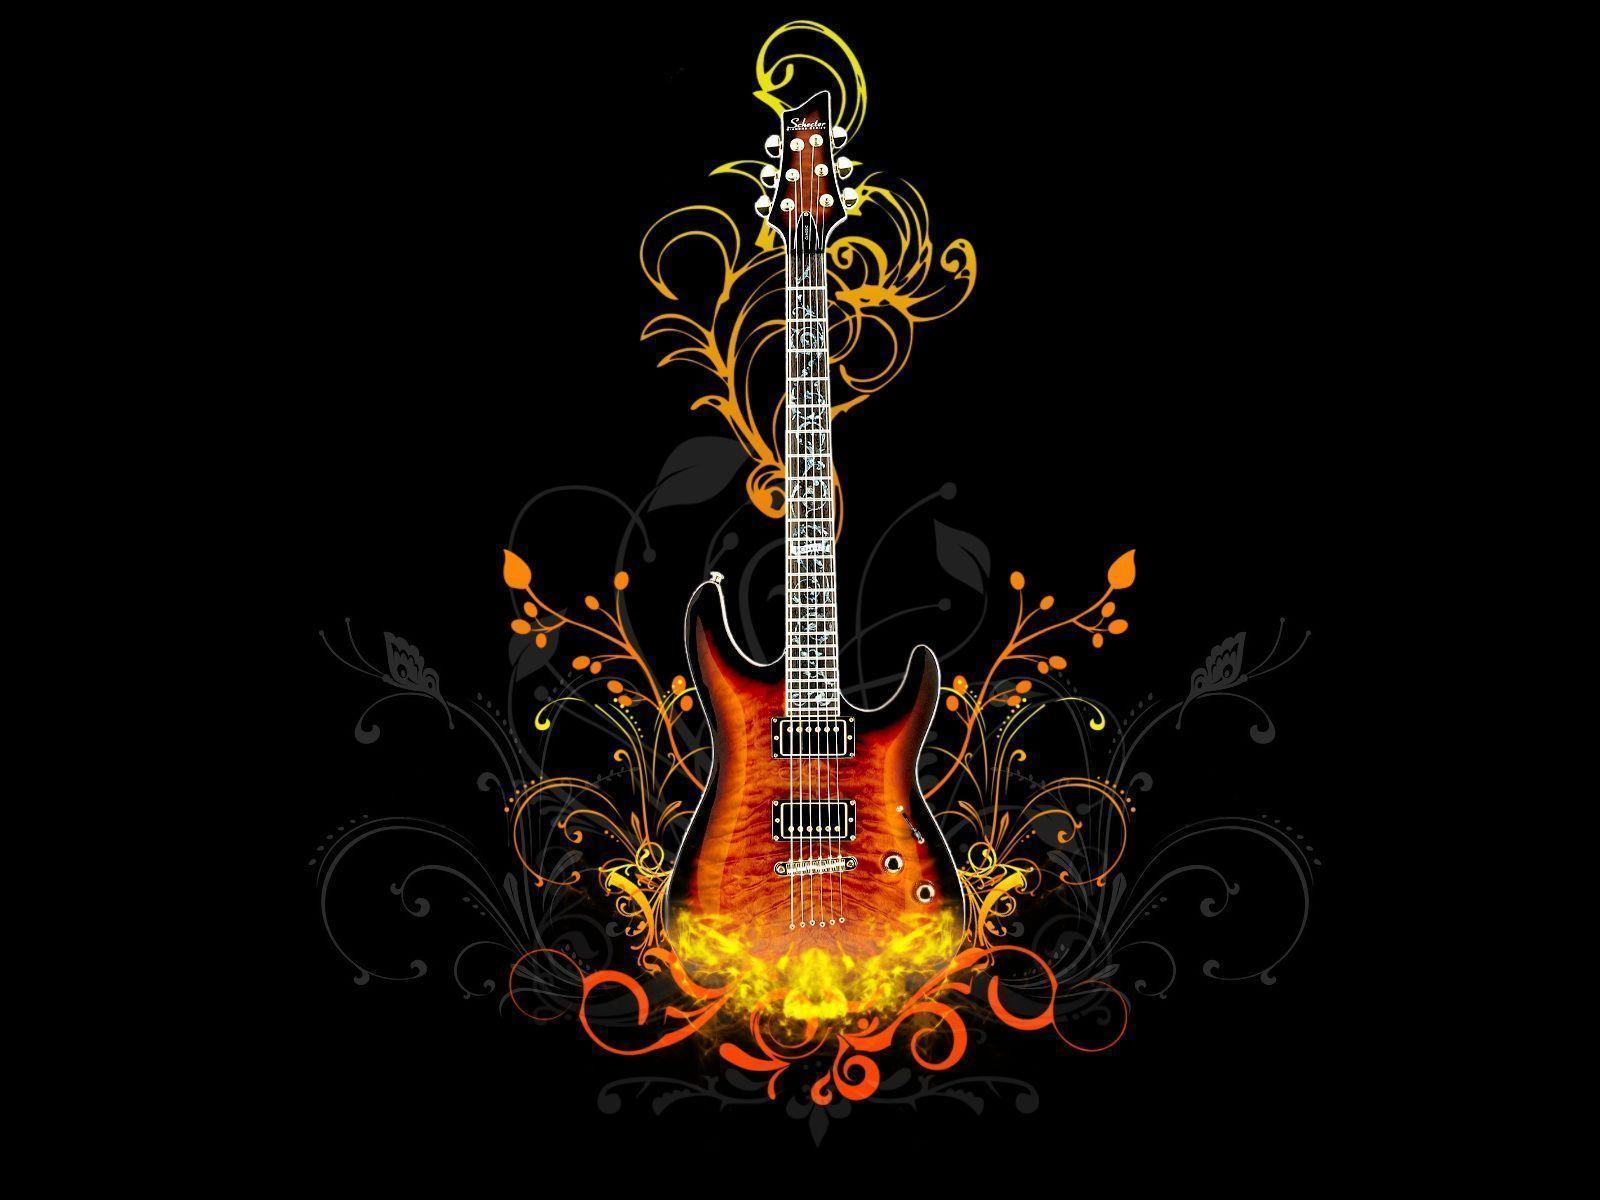 Guitar Image Hd Hd Background Wallpaper 38 HD Wallpapers | www ...